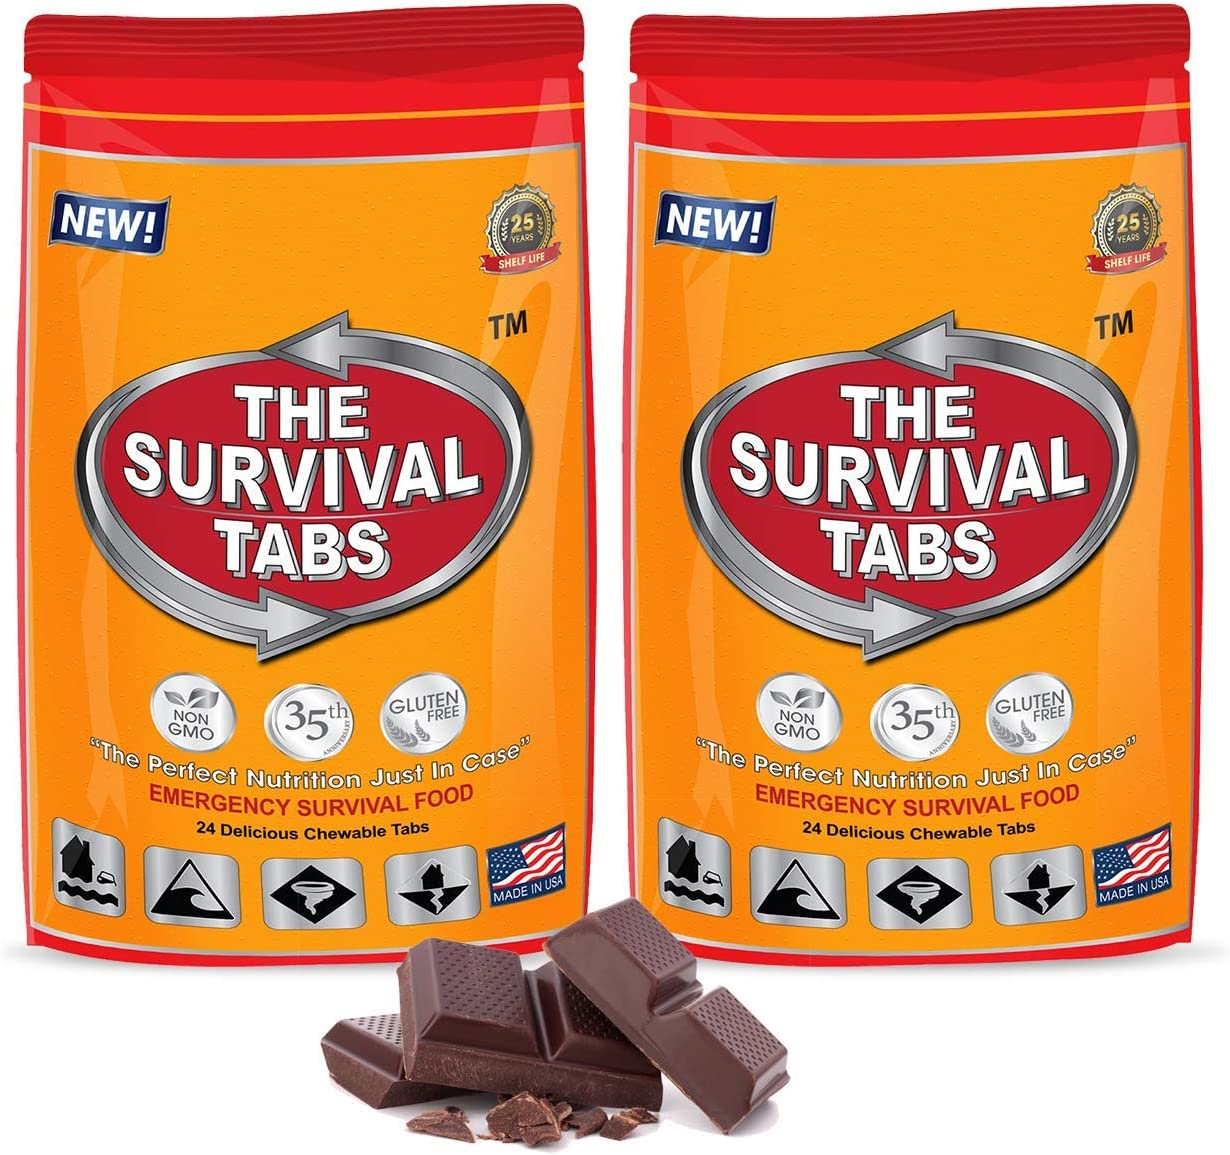 Food Rations, 2 Pack of 24 tabs   Emergency Food Ration Pack, 480 Calories none-GMO gluten-free 25 years shelf life (Chocolate)